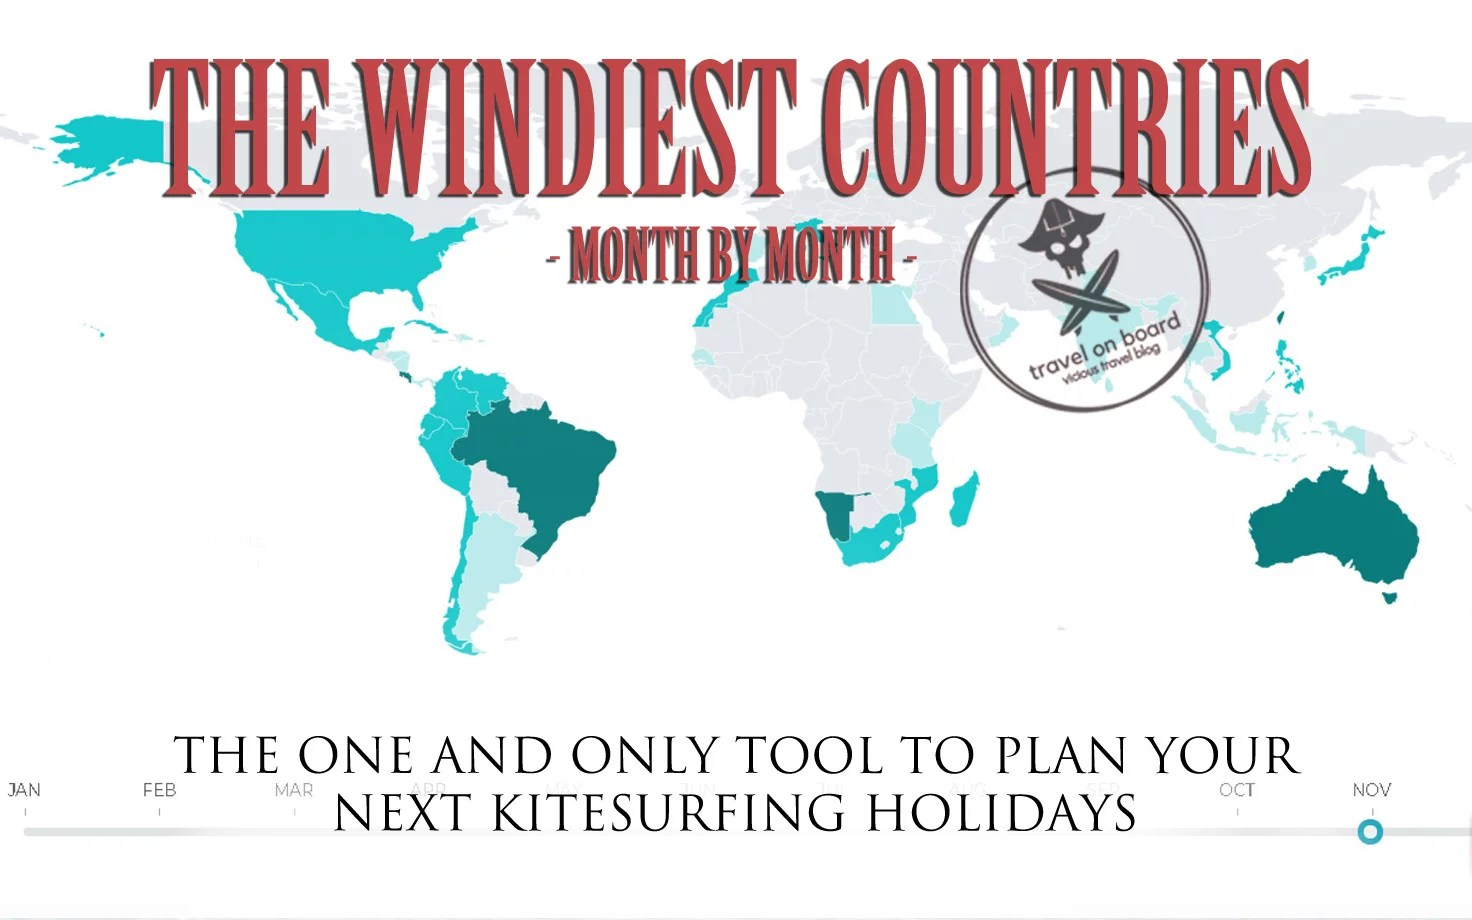 Travel Blog With Map Map With The Windiest Kitesurfing Destinations Month By Month